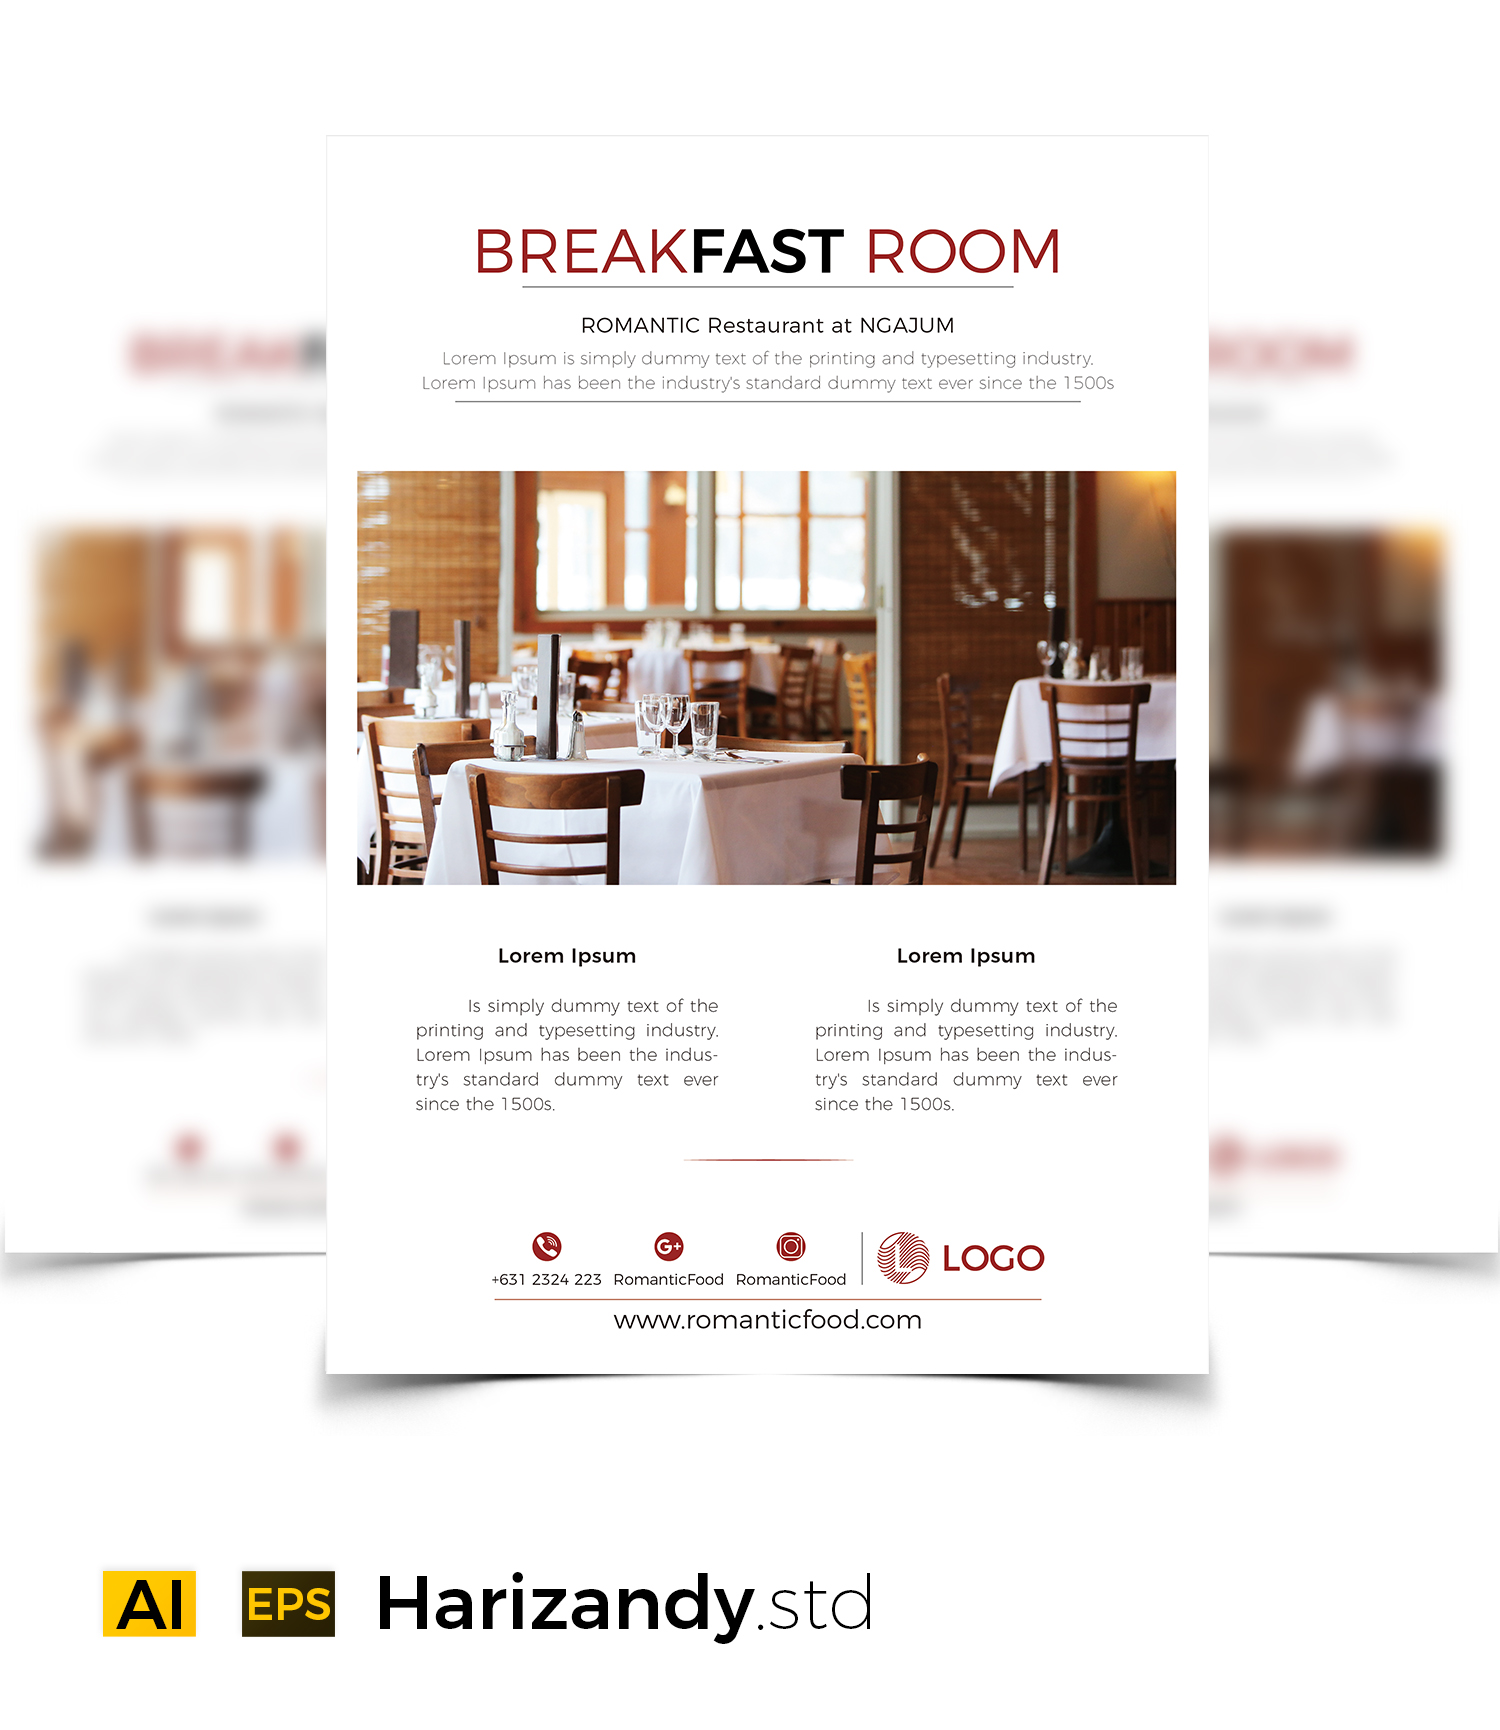 Breakfast Room Graphic Print Templates By harizandy - Image 3